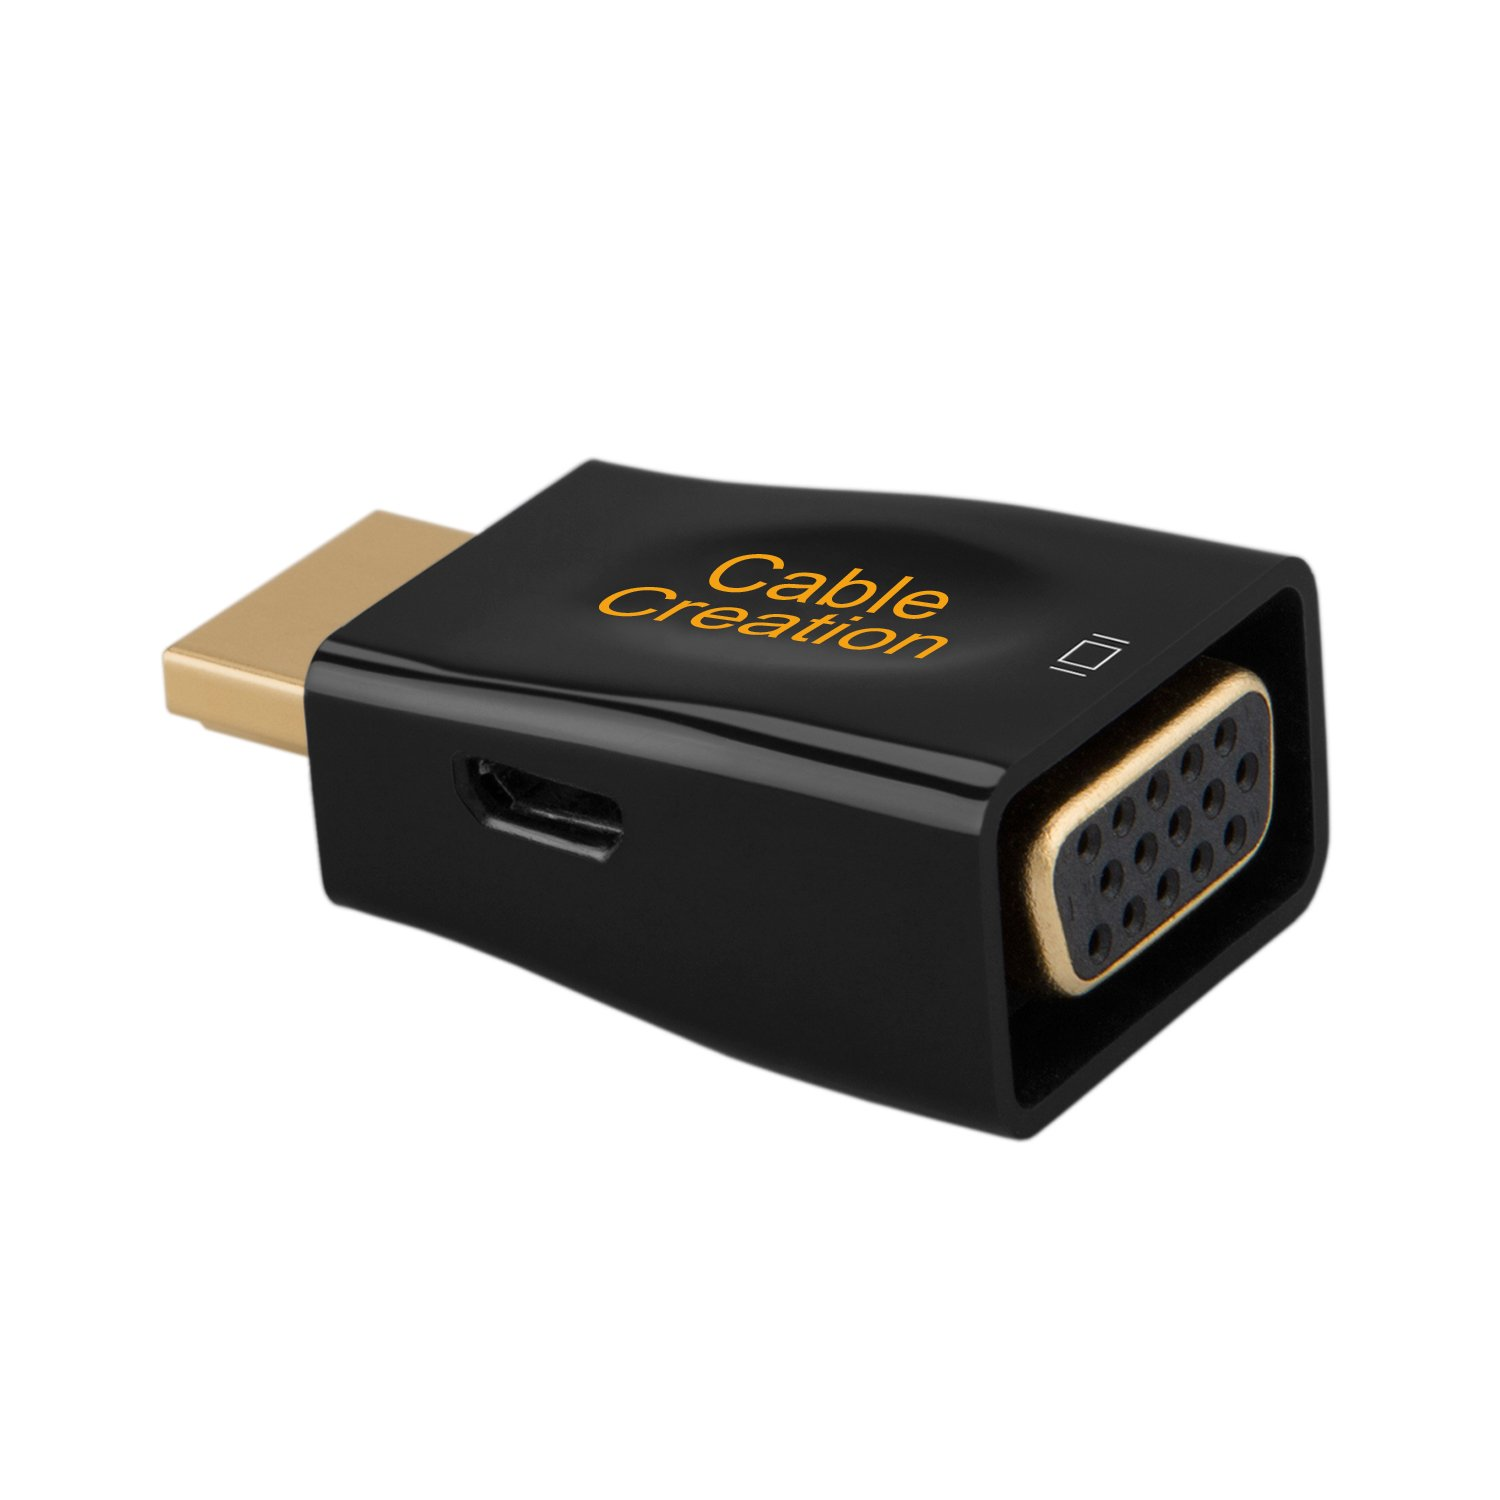 Gold Plated HDMI HDTV to VGA Converter Male to Female Support 1080P Black HDMI to VGA Adapter CableCreation 3-Pack